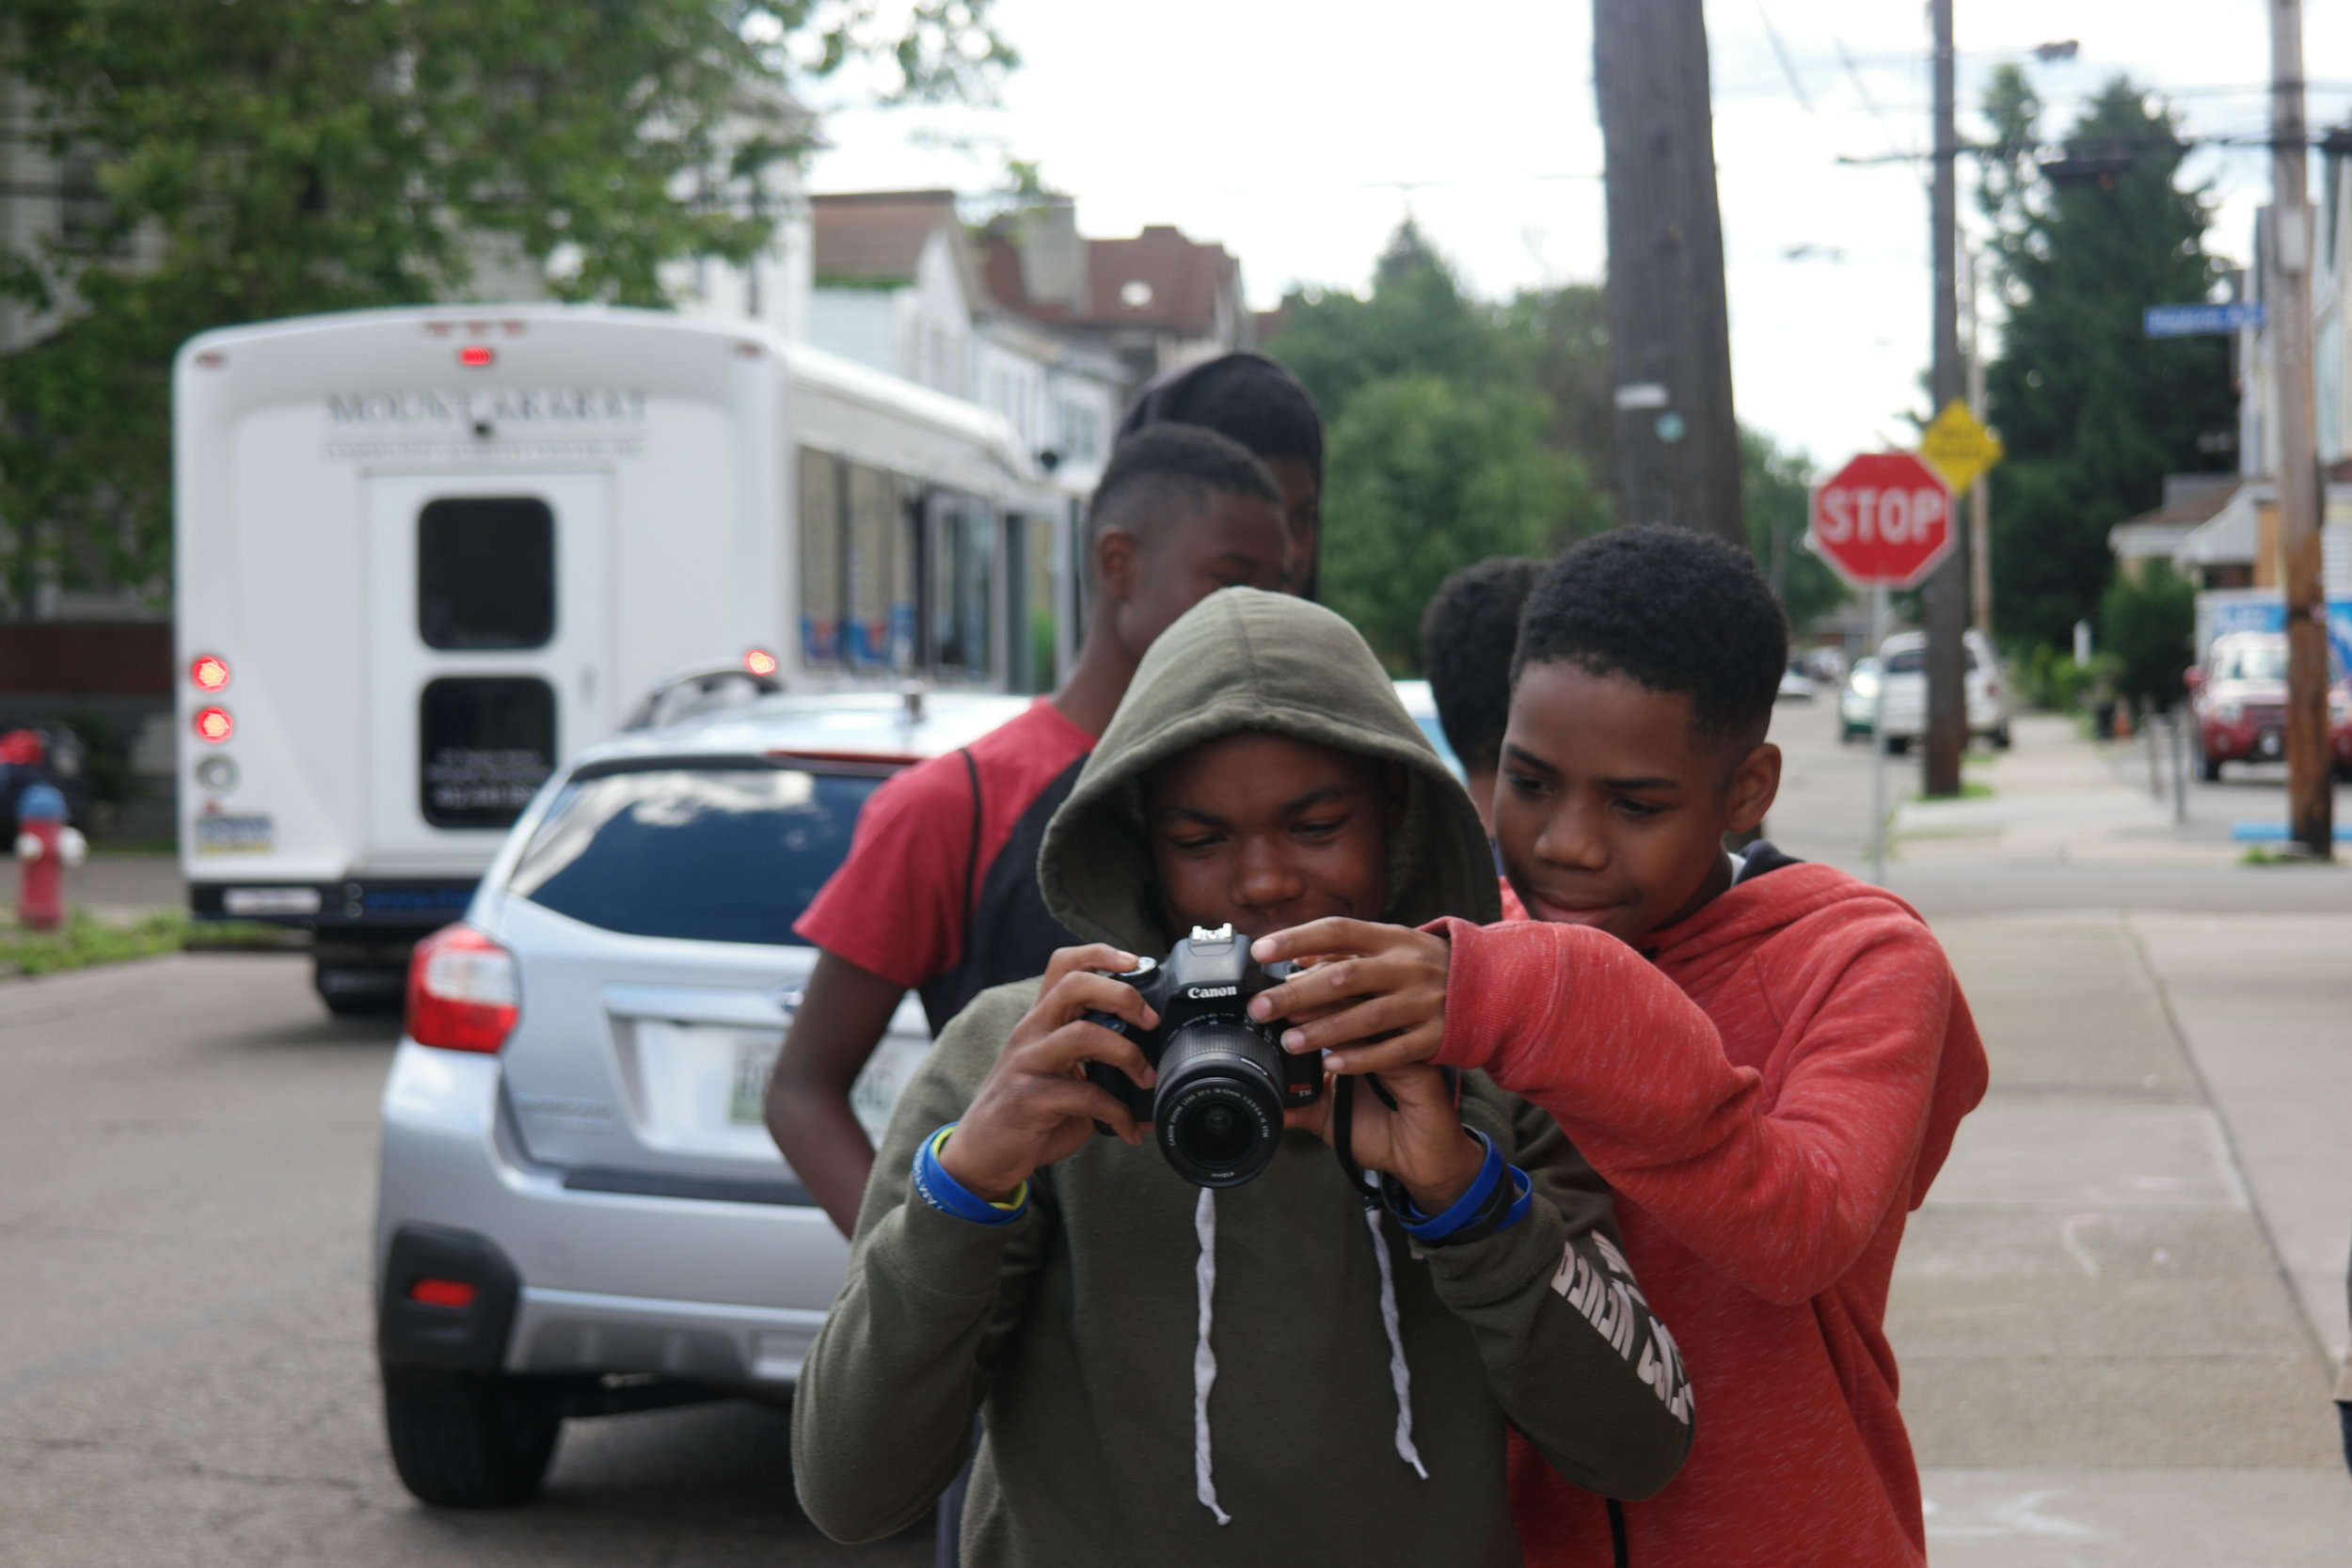 Youth participants learned the fundamentals of photography and practiced using DSLR cameras around the campus of Mount Ararat before employing their skills on the water.